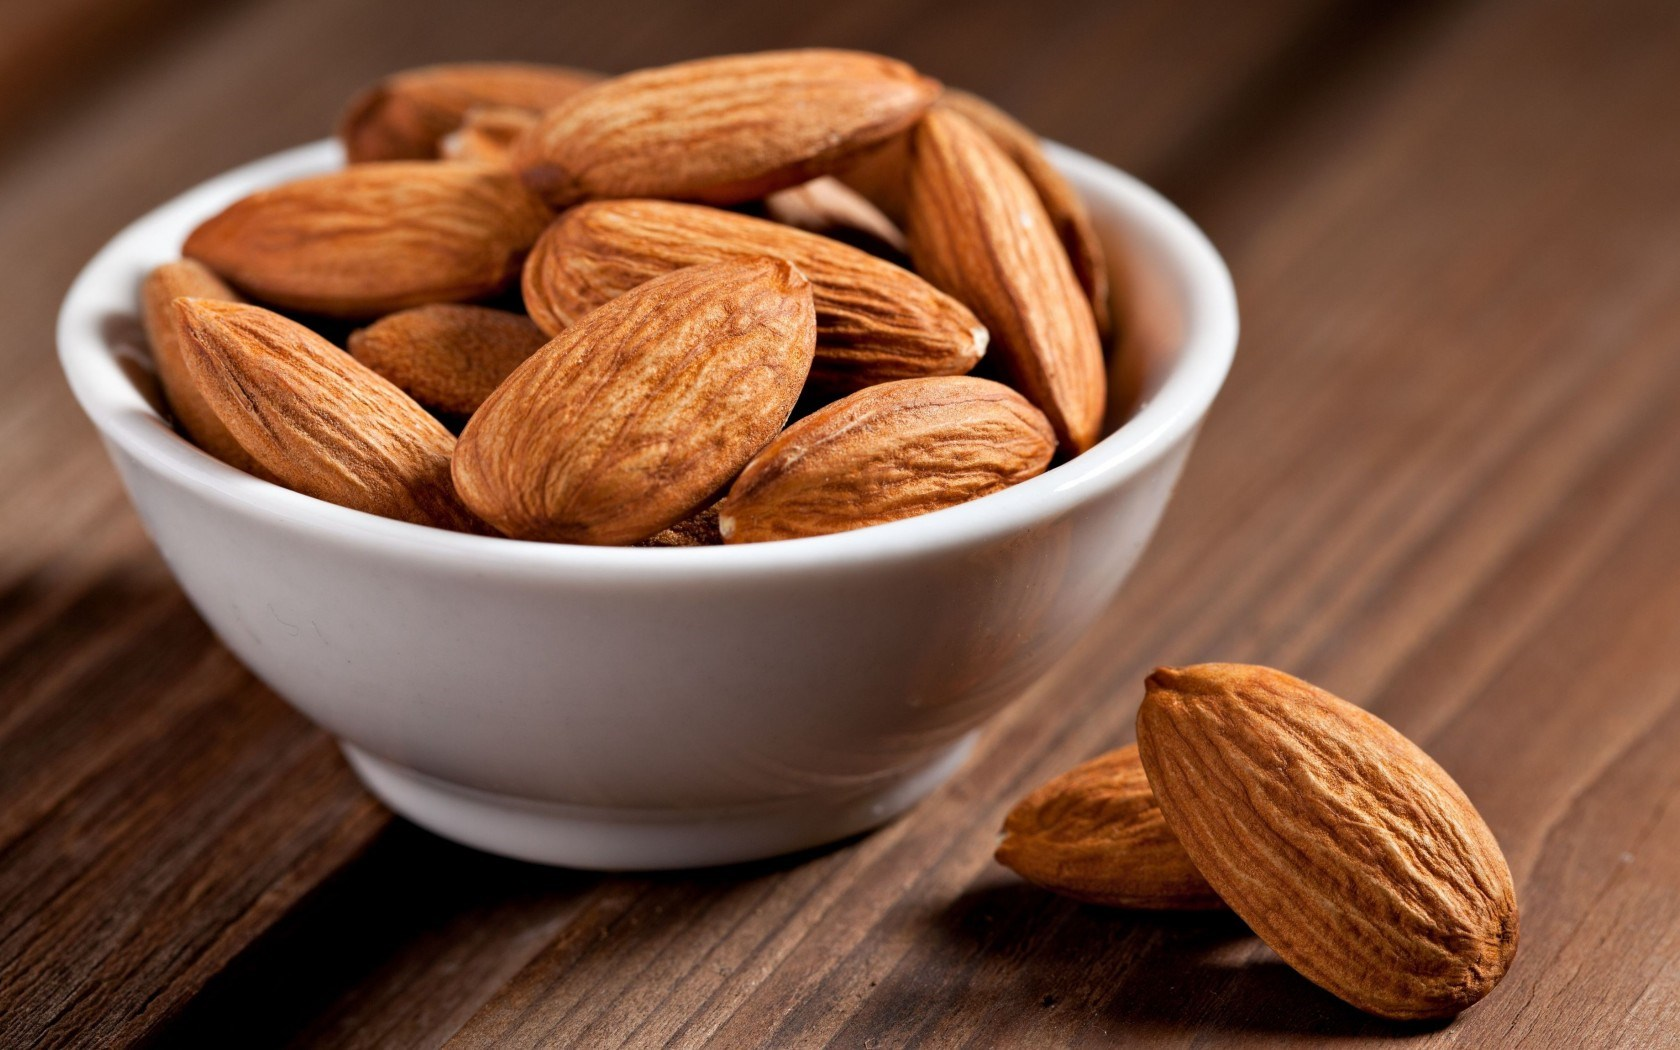 food-almonds-a-cup-hd-wallpaper (1)